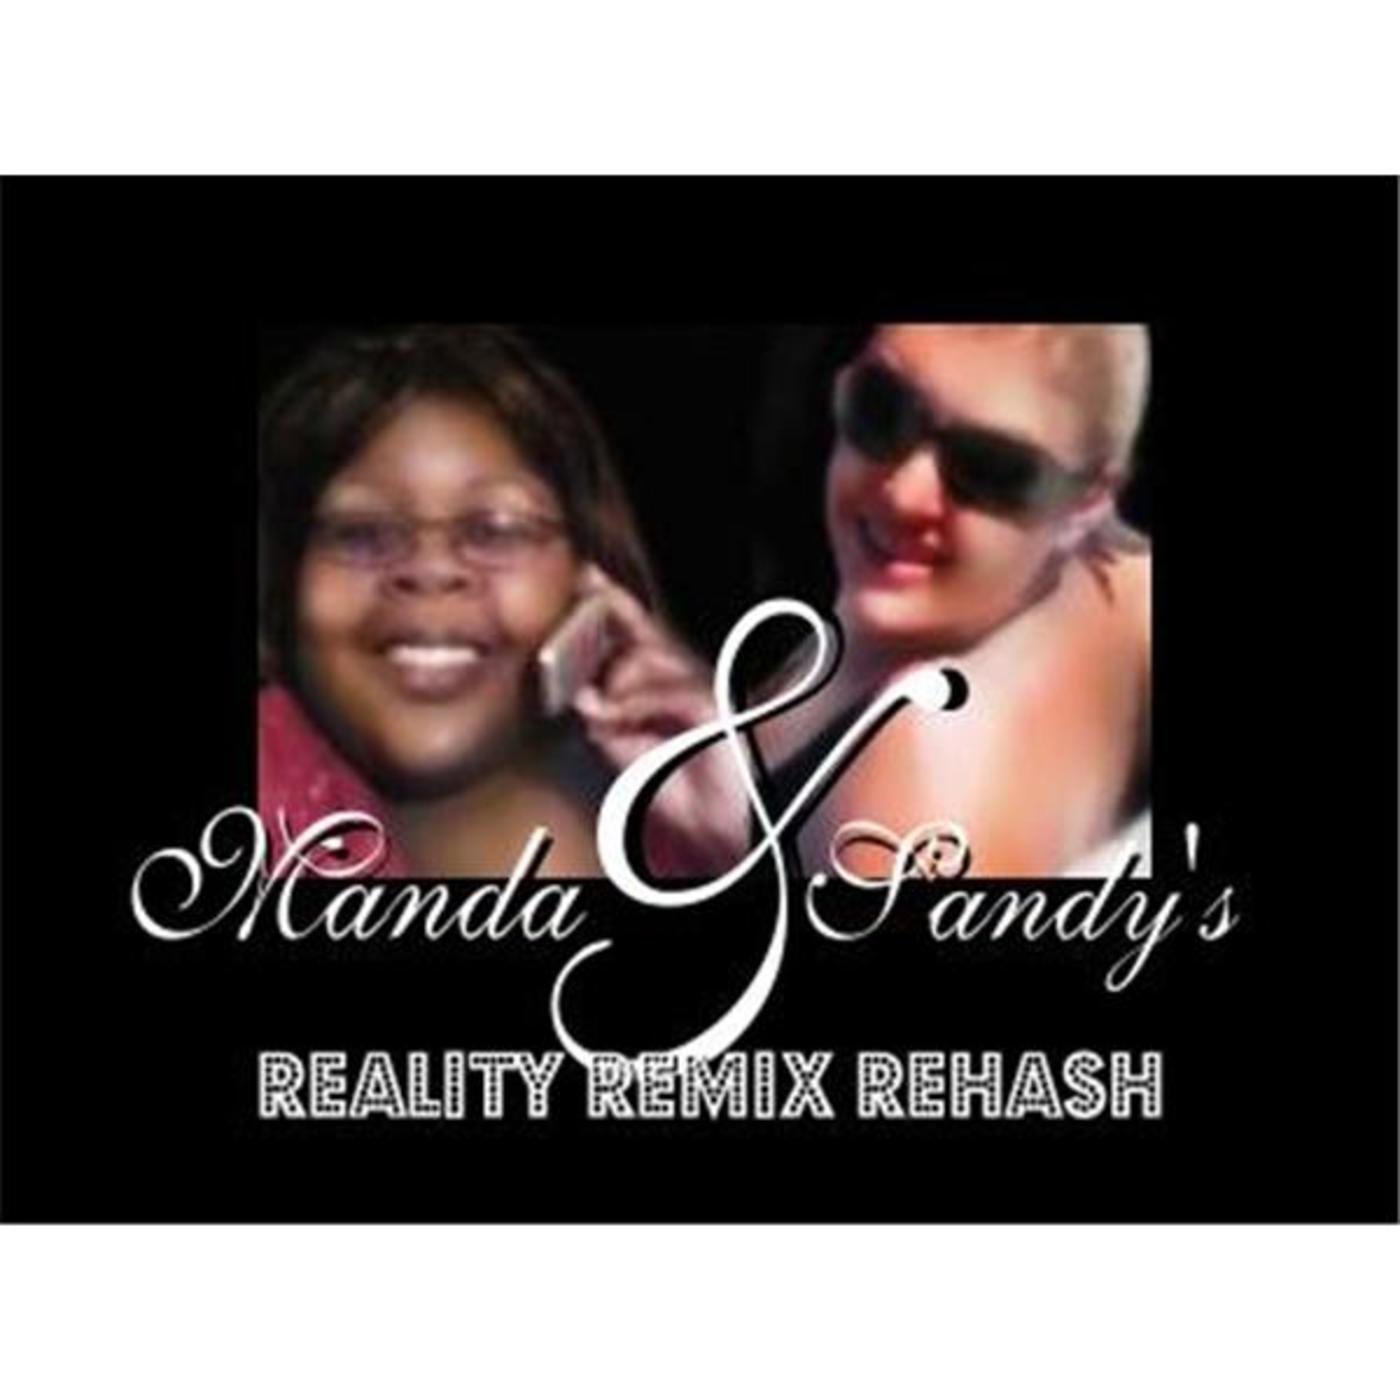 Reality ReMix - Where Reality and Radio Combine!